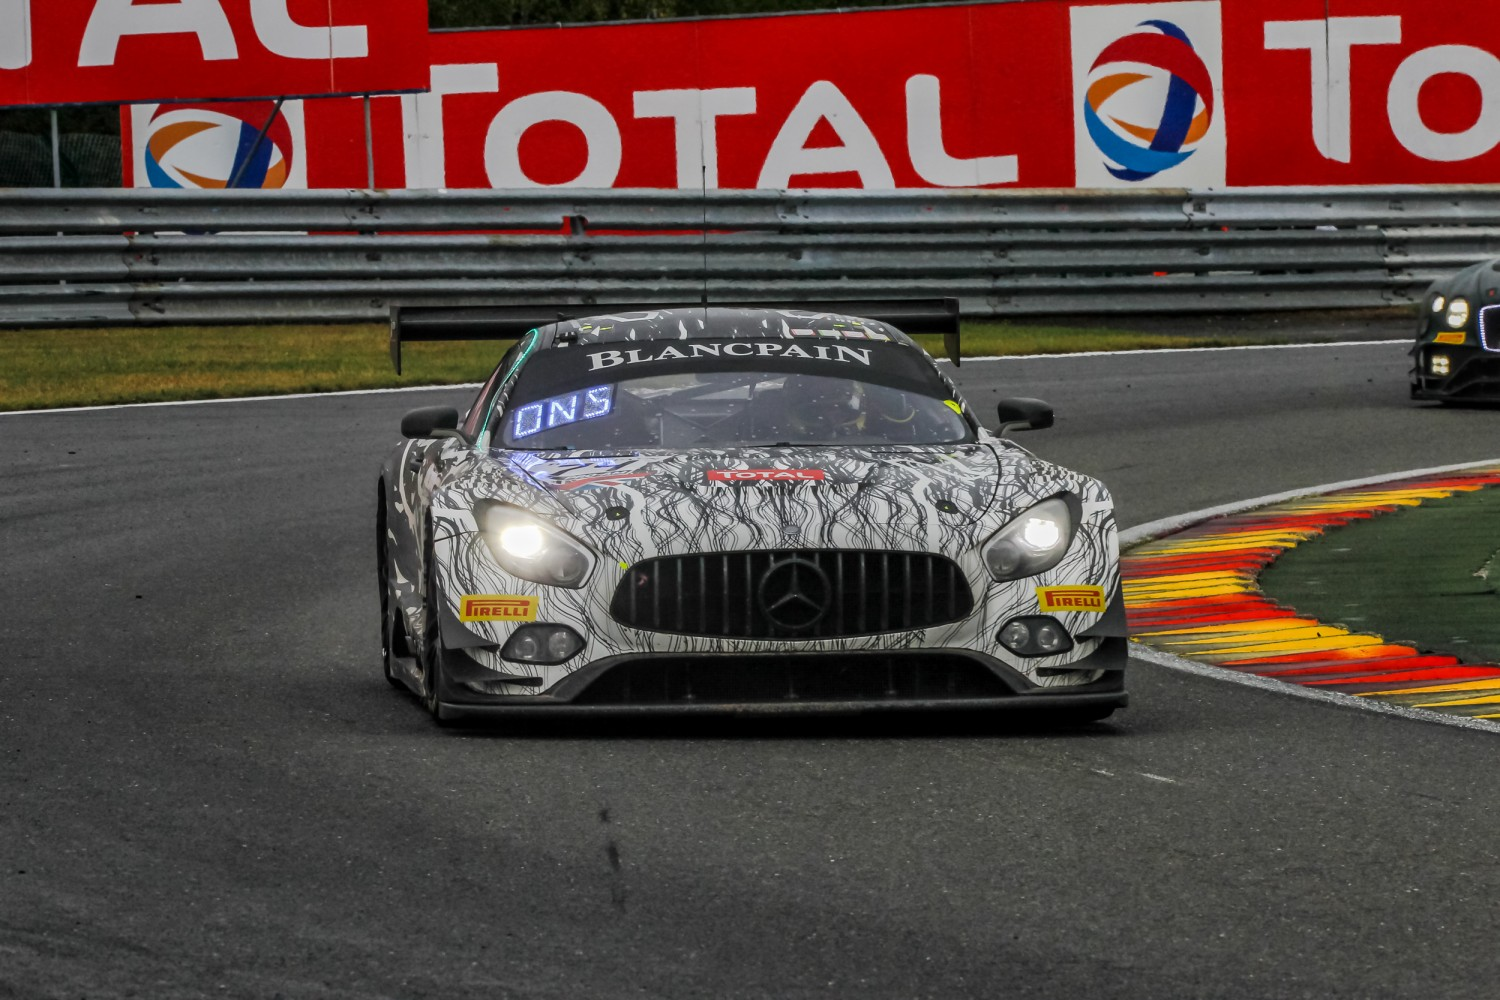 #74 Ram Racing GBR Mercedes-AMG GT3 Remon Vos NDL Darren Burke GBR Christiaan Frankenhout NDL Tom Onslow-Cole GBR Pro-Am Cup, Race  | SRO / Patrick Hecq Photography